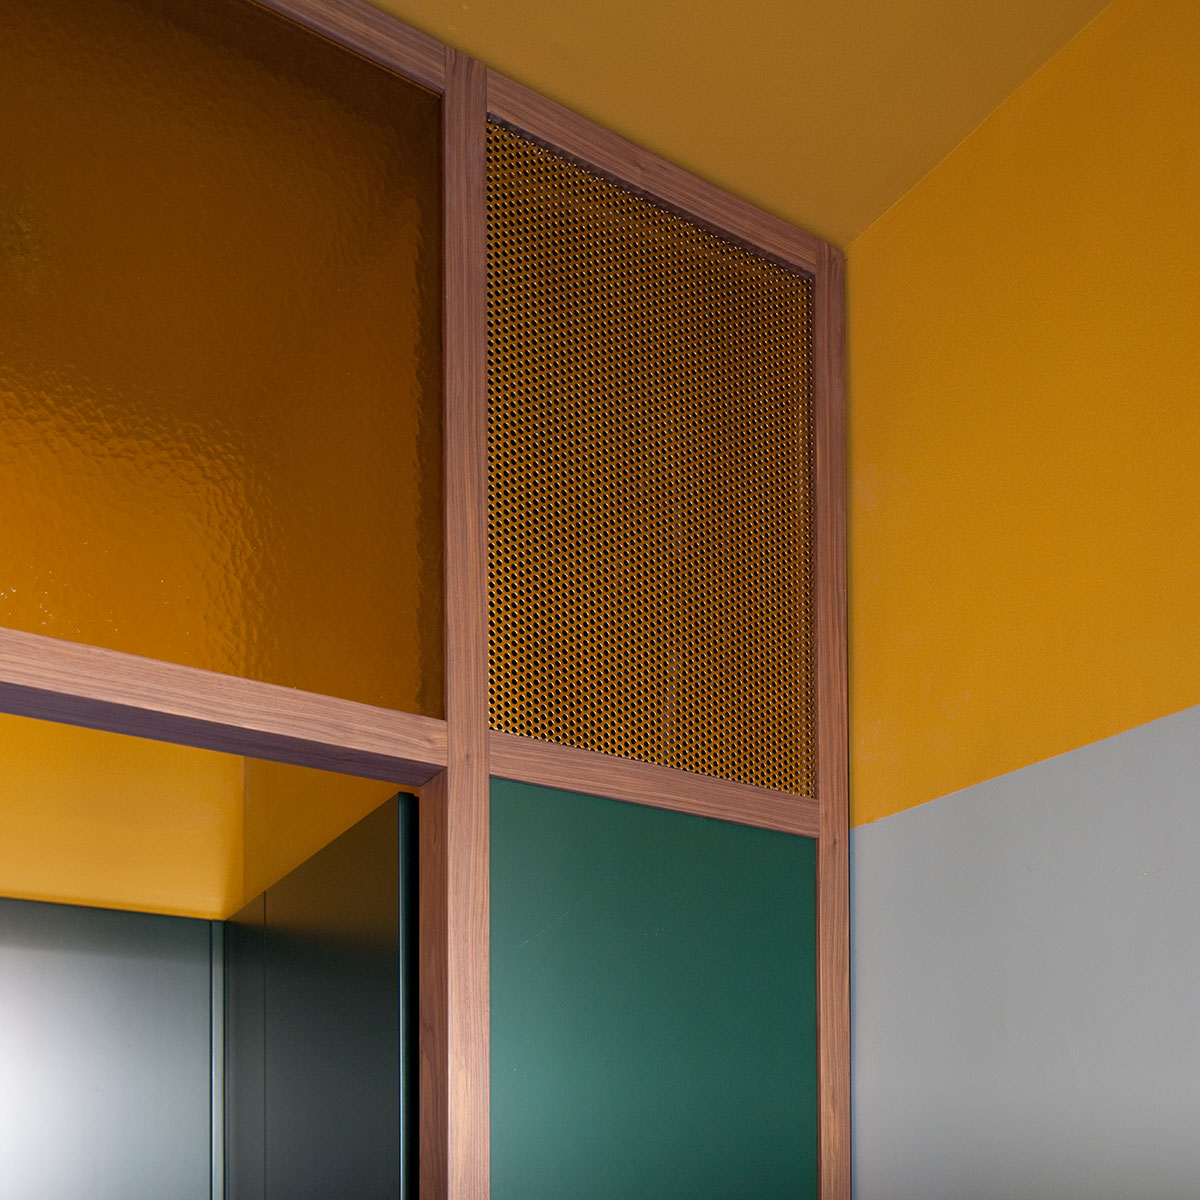 kickoffice casa n kitchen color glass wood corner perforated detail